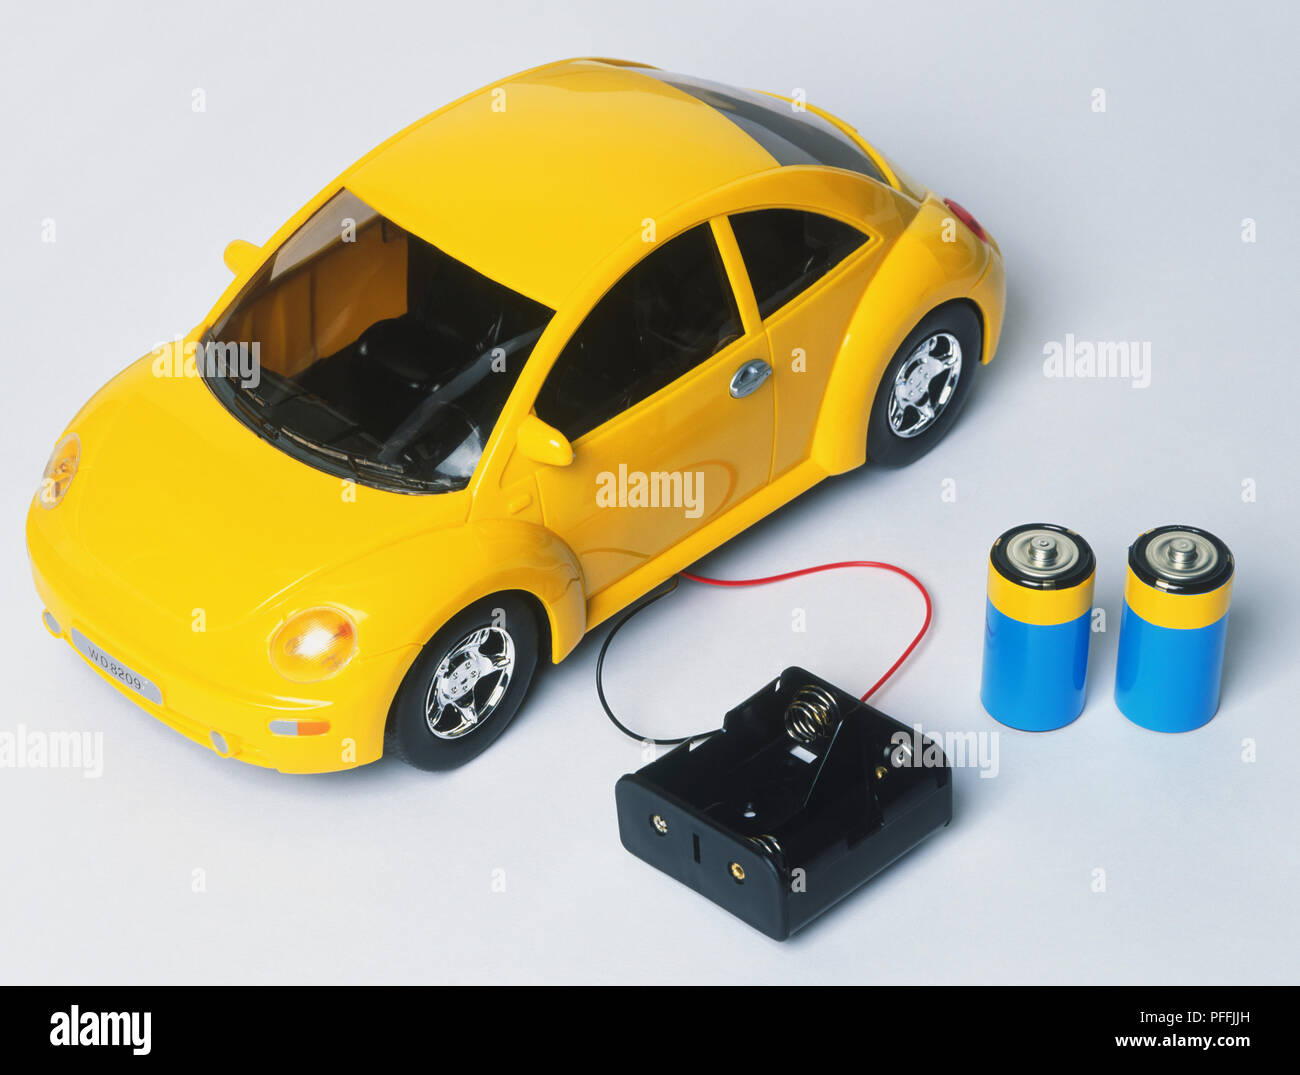 new arrival 66a5a f7044 Yellow toy car connected to empty battery case, two batteries ...